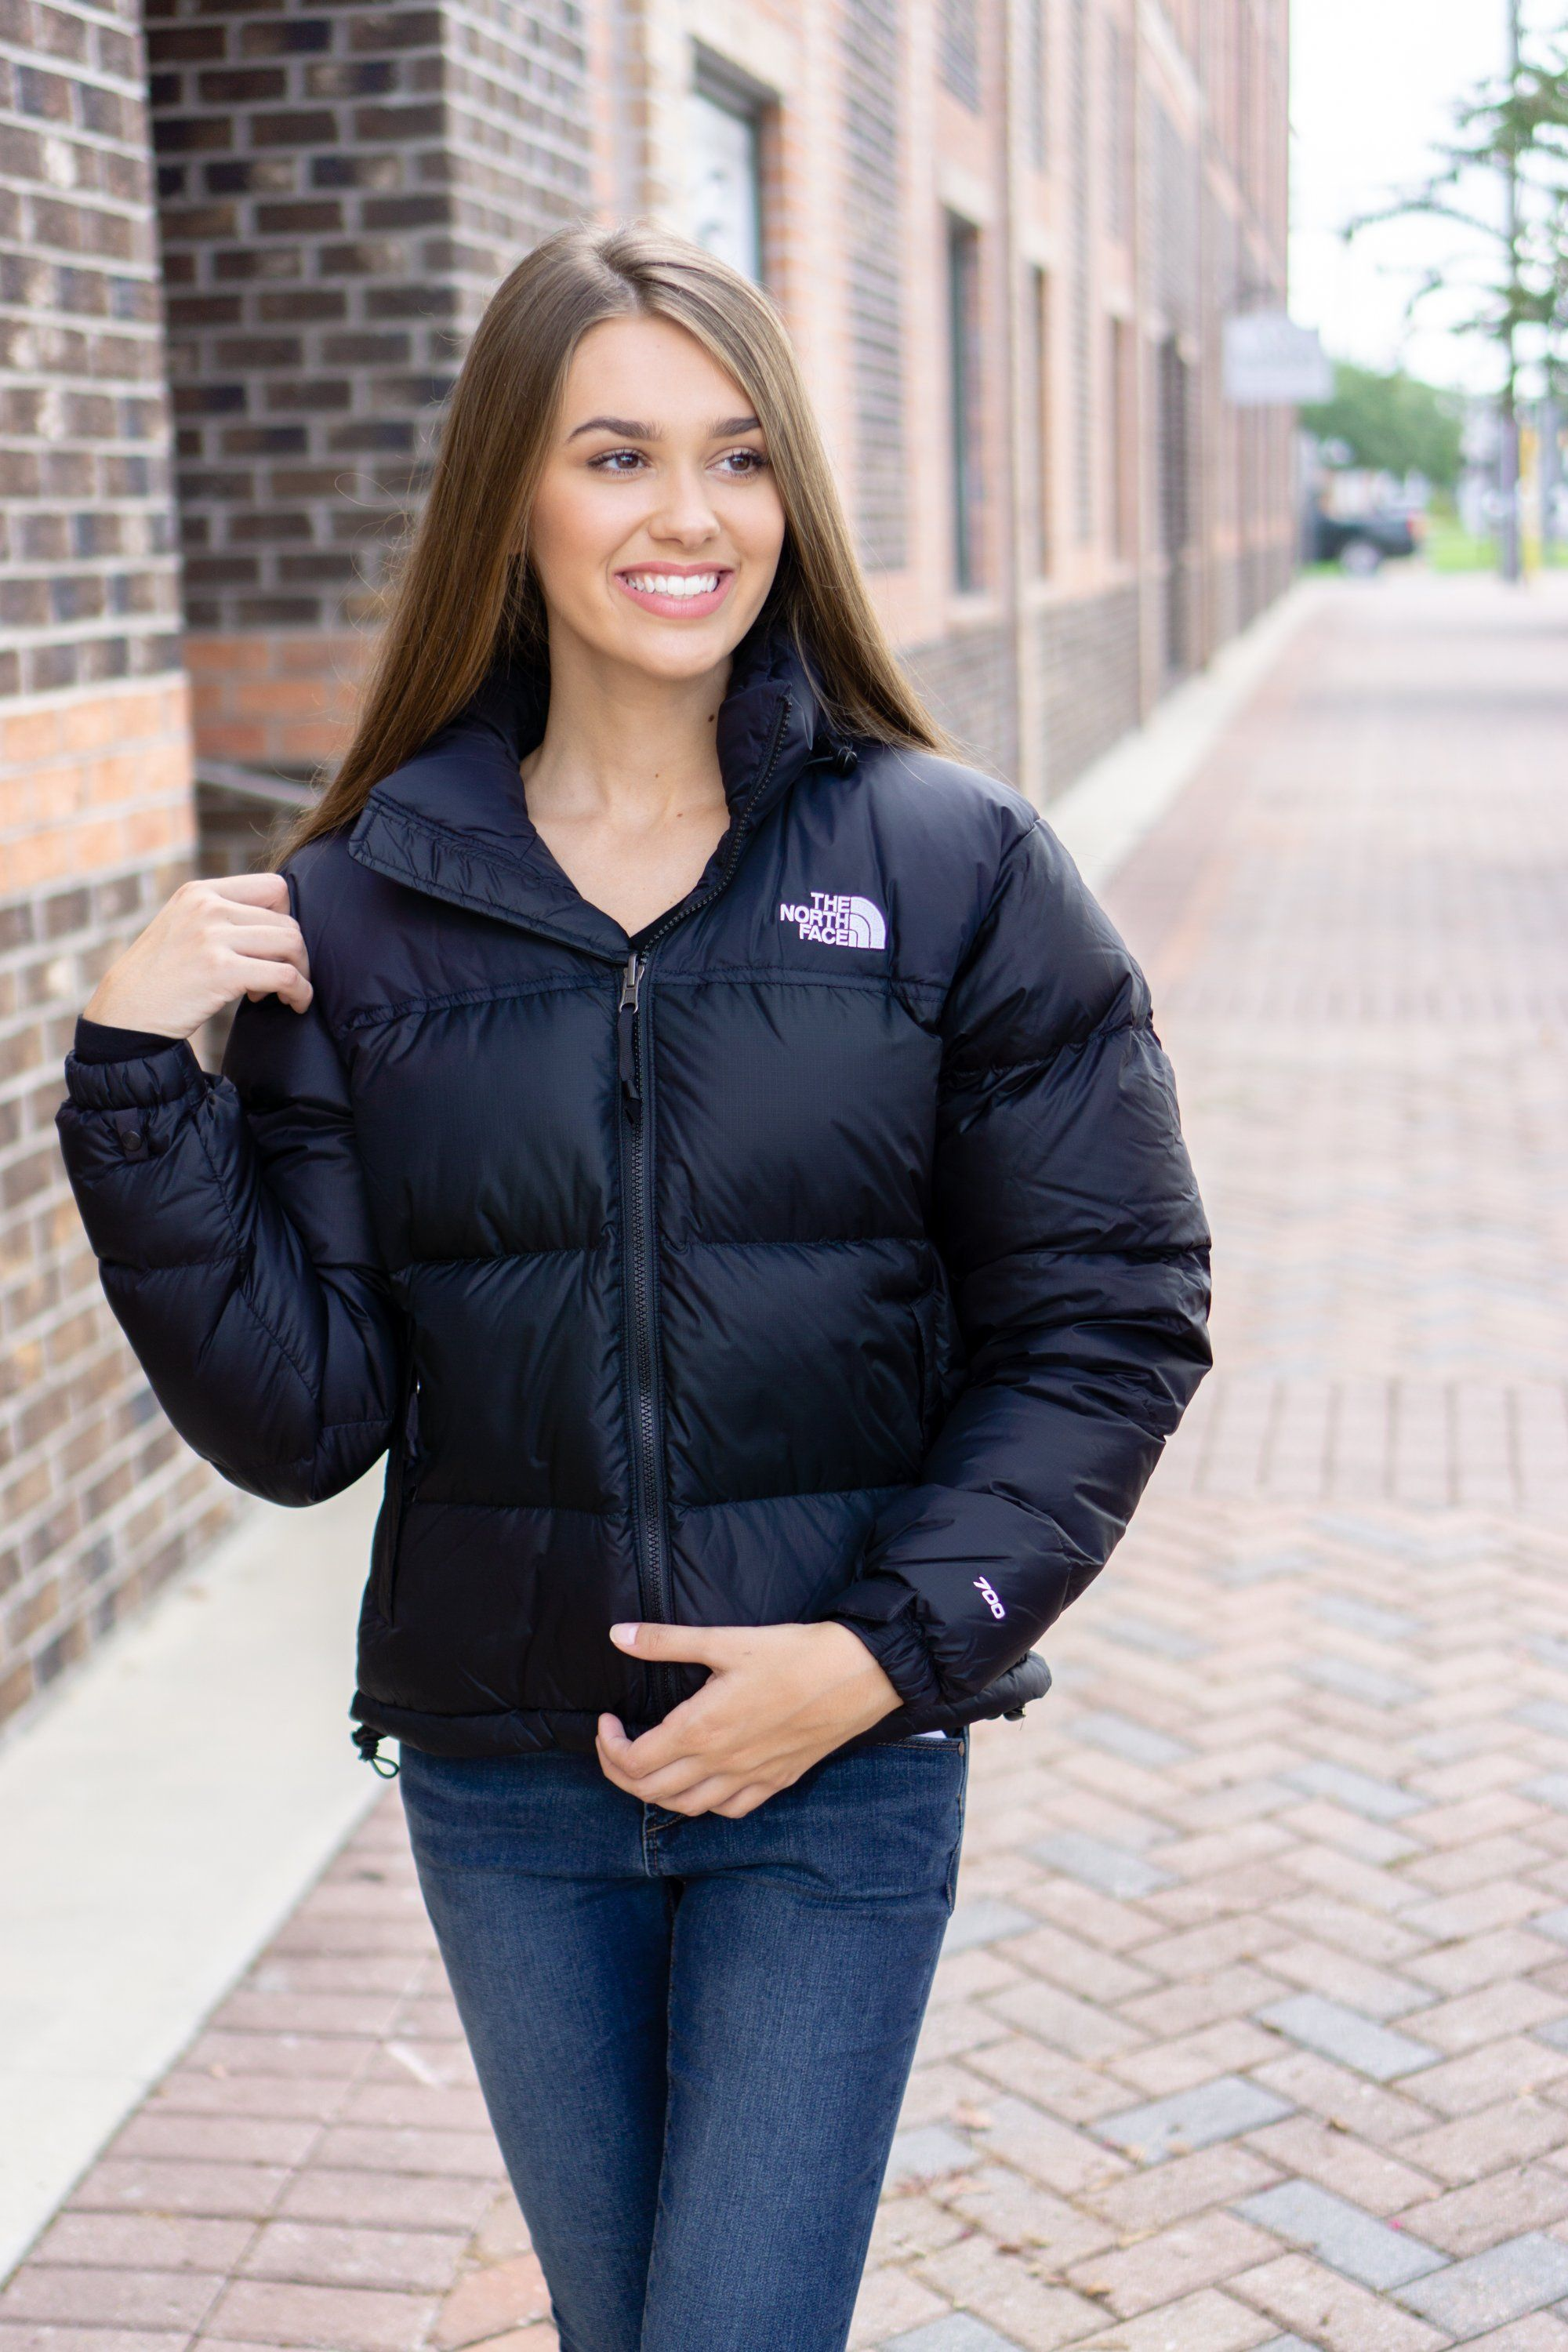 06d112caa North Face Women's 1996 Retro Nuptse Jacket - Black | The fits in ...